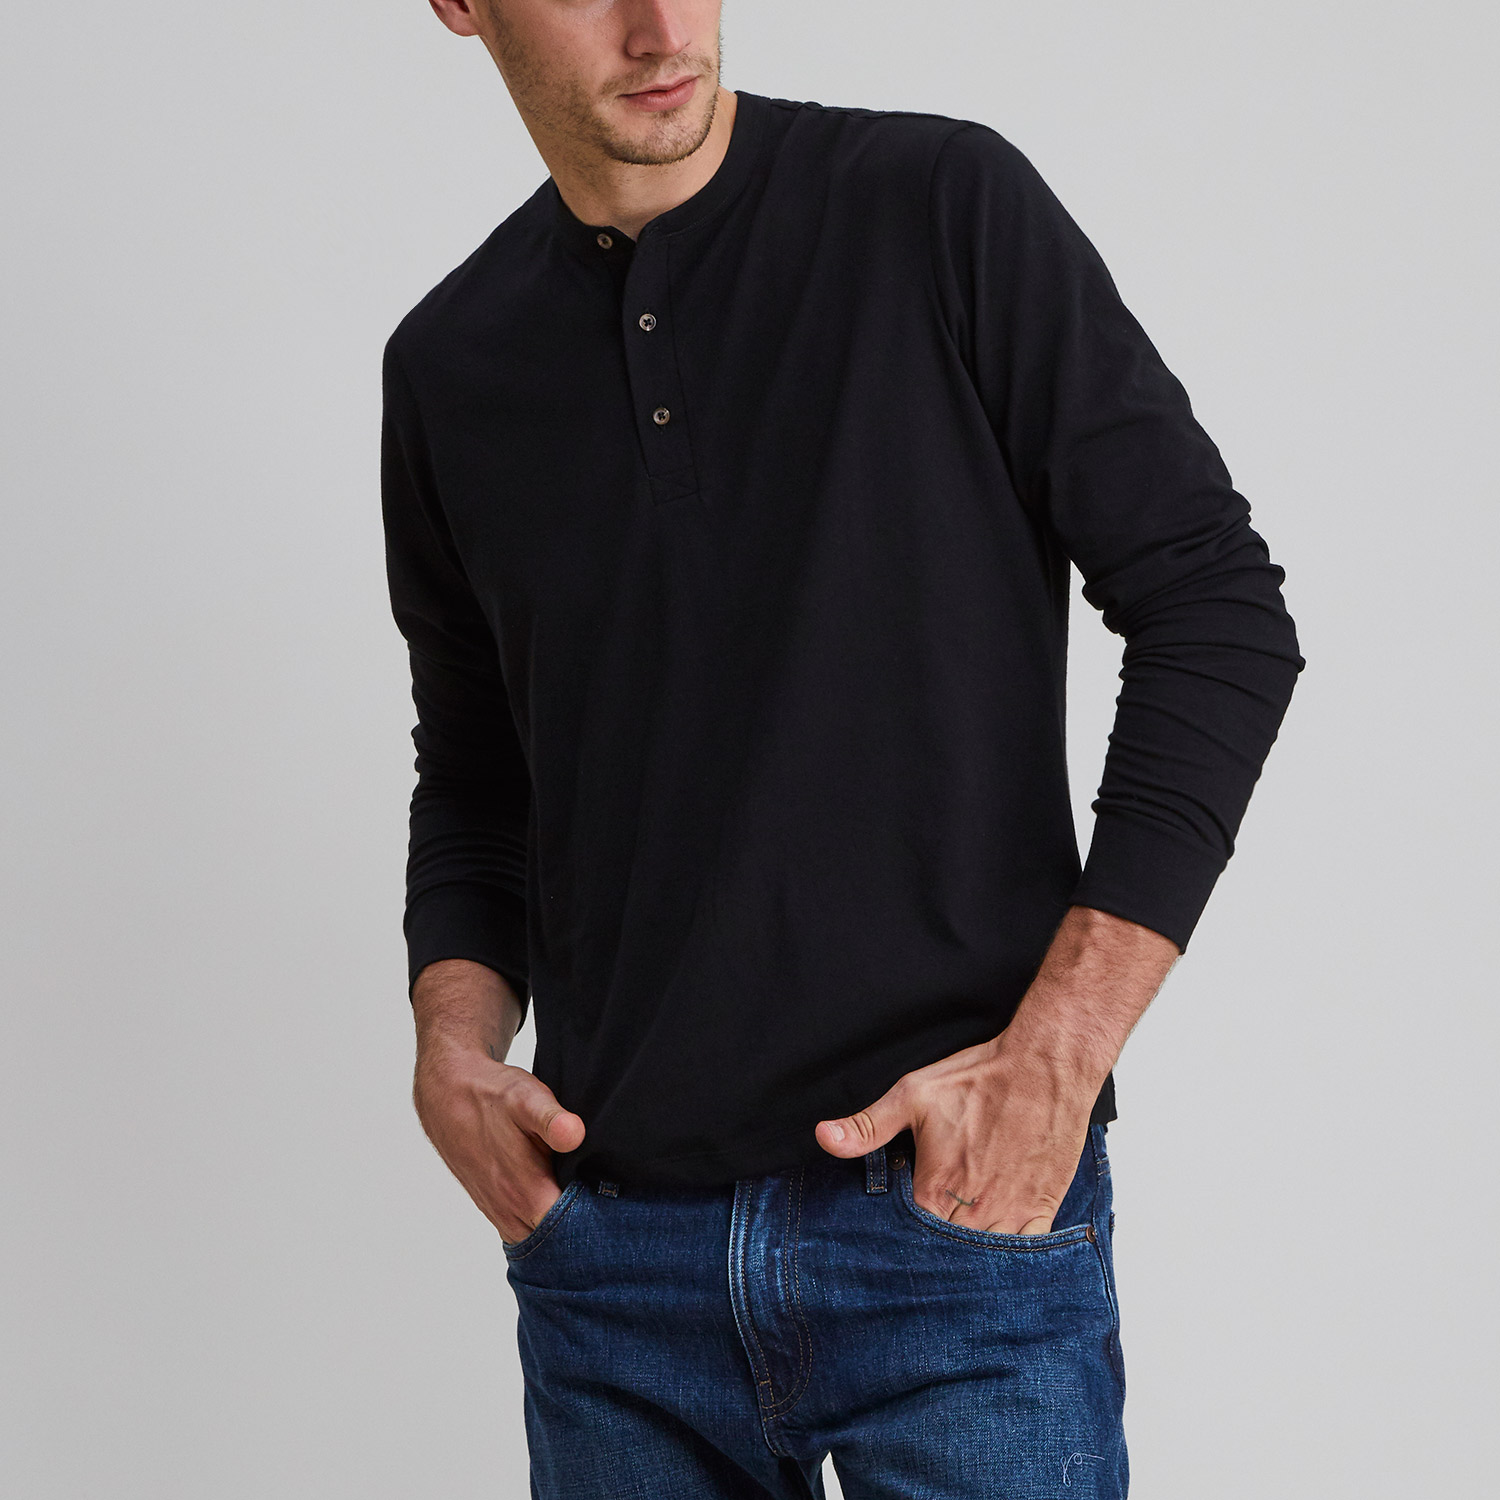 Shop a great selection of Henleys for Men at Nordstrom Rack. Find designer Henleys for Men up to 70% off and get free shipping on orders over $